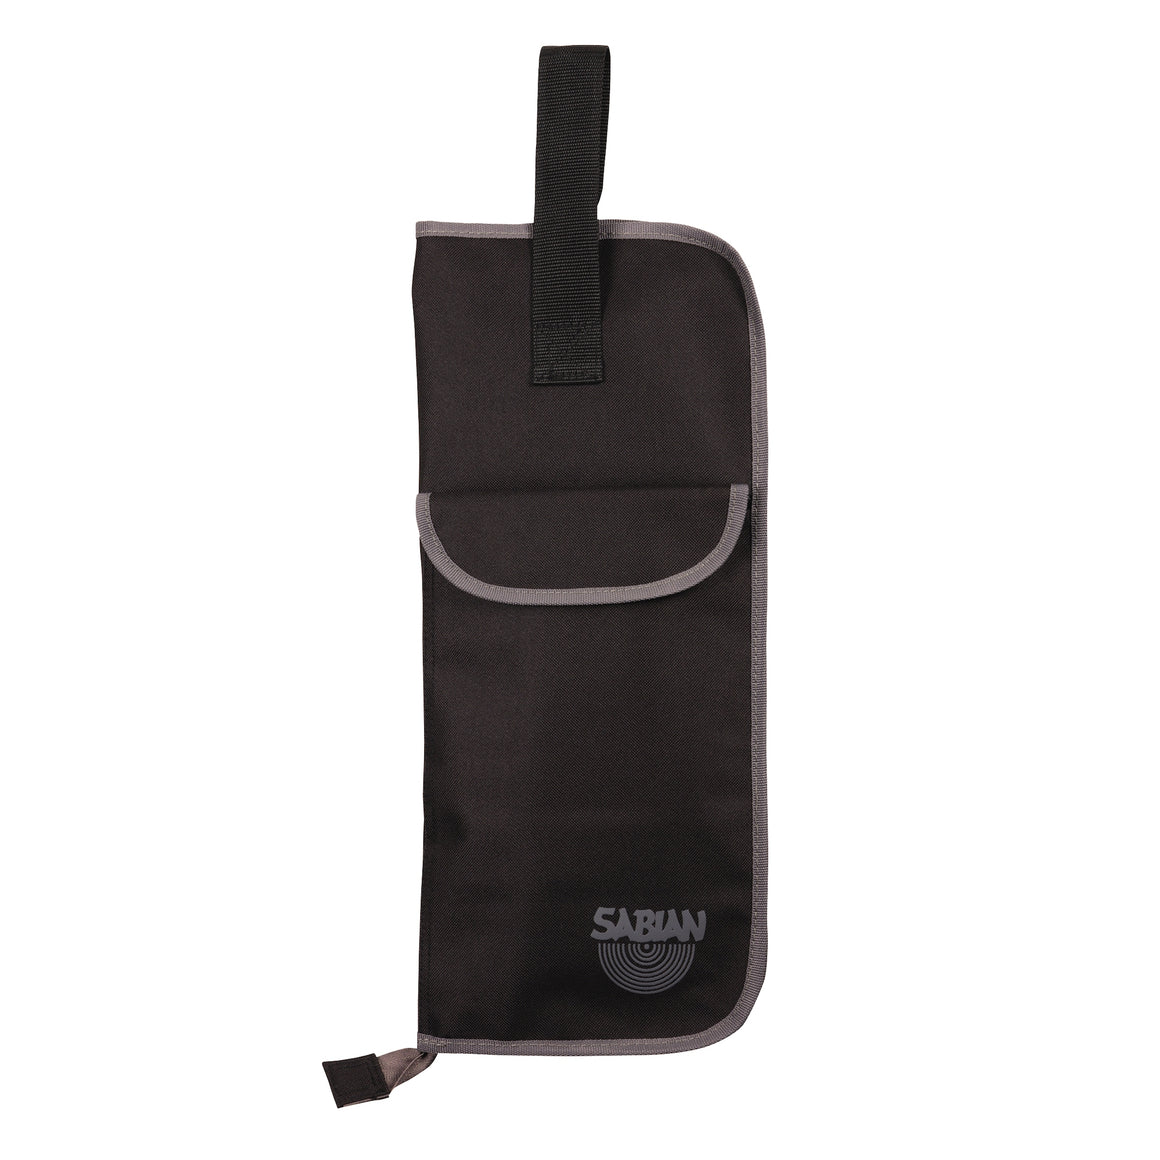 Sabian Express Drum Stick Bag